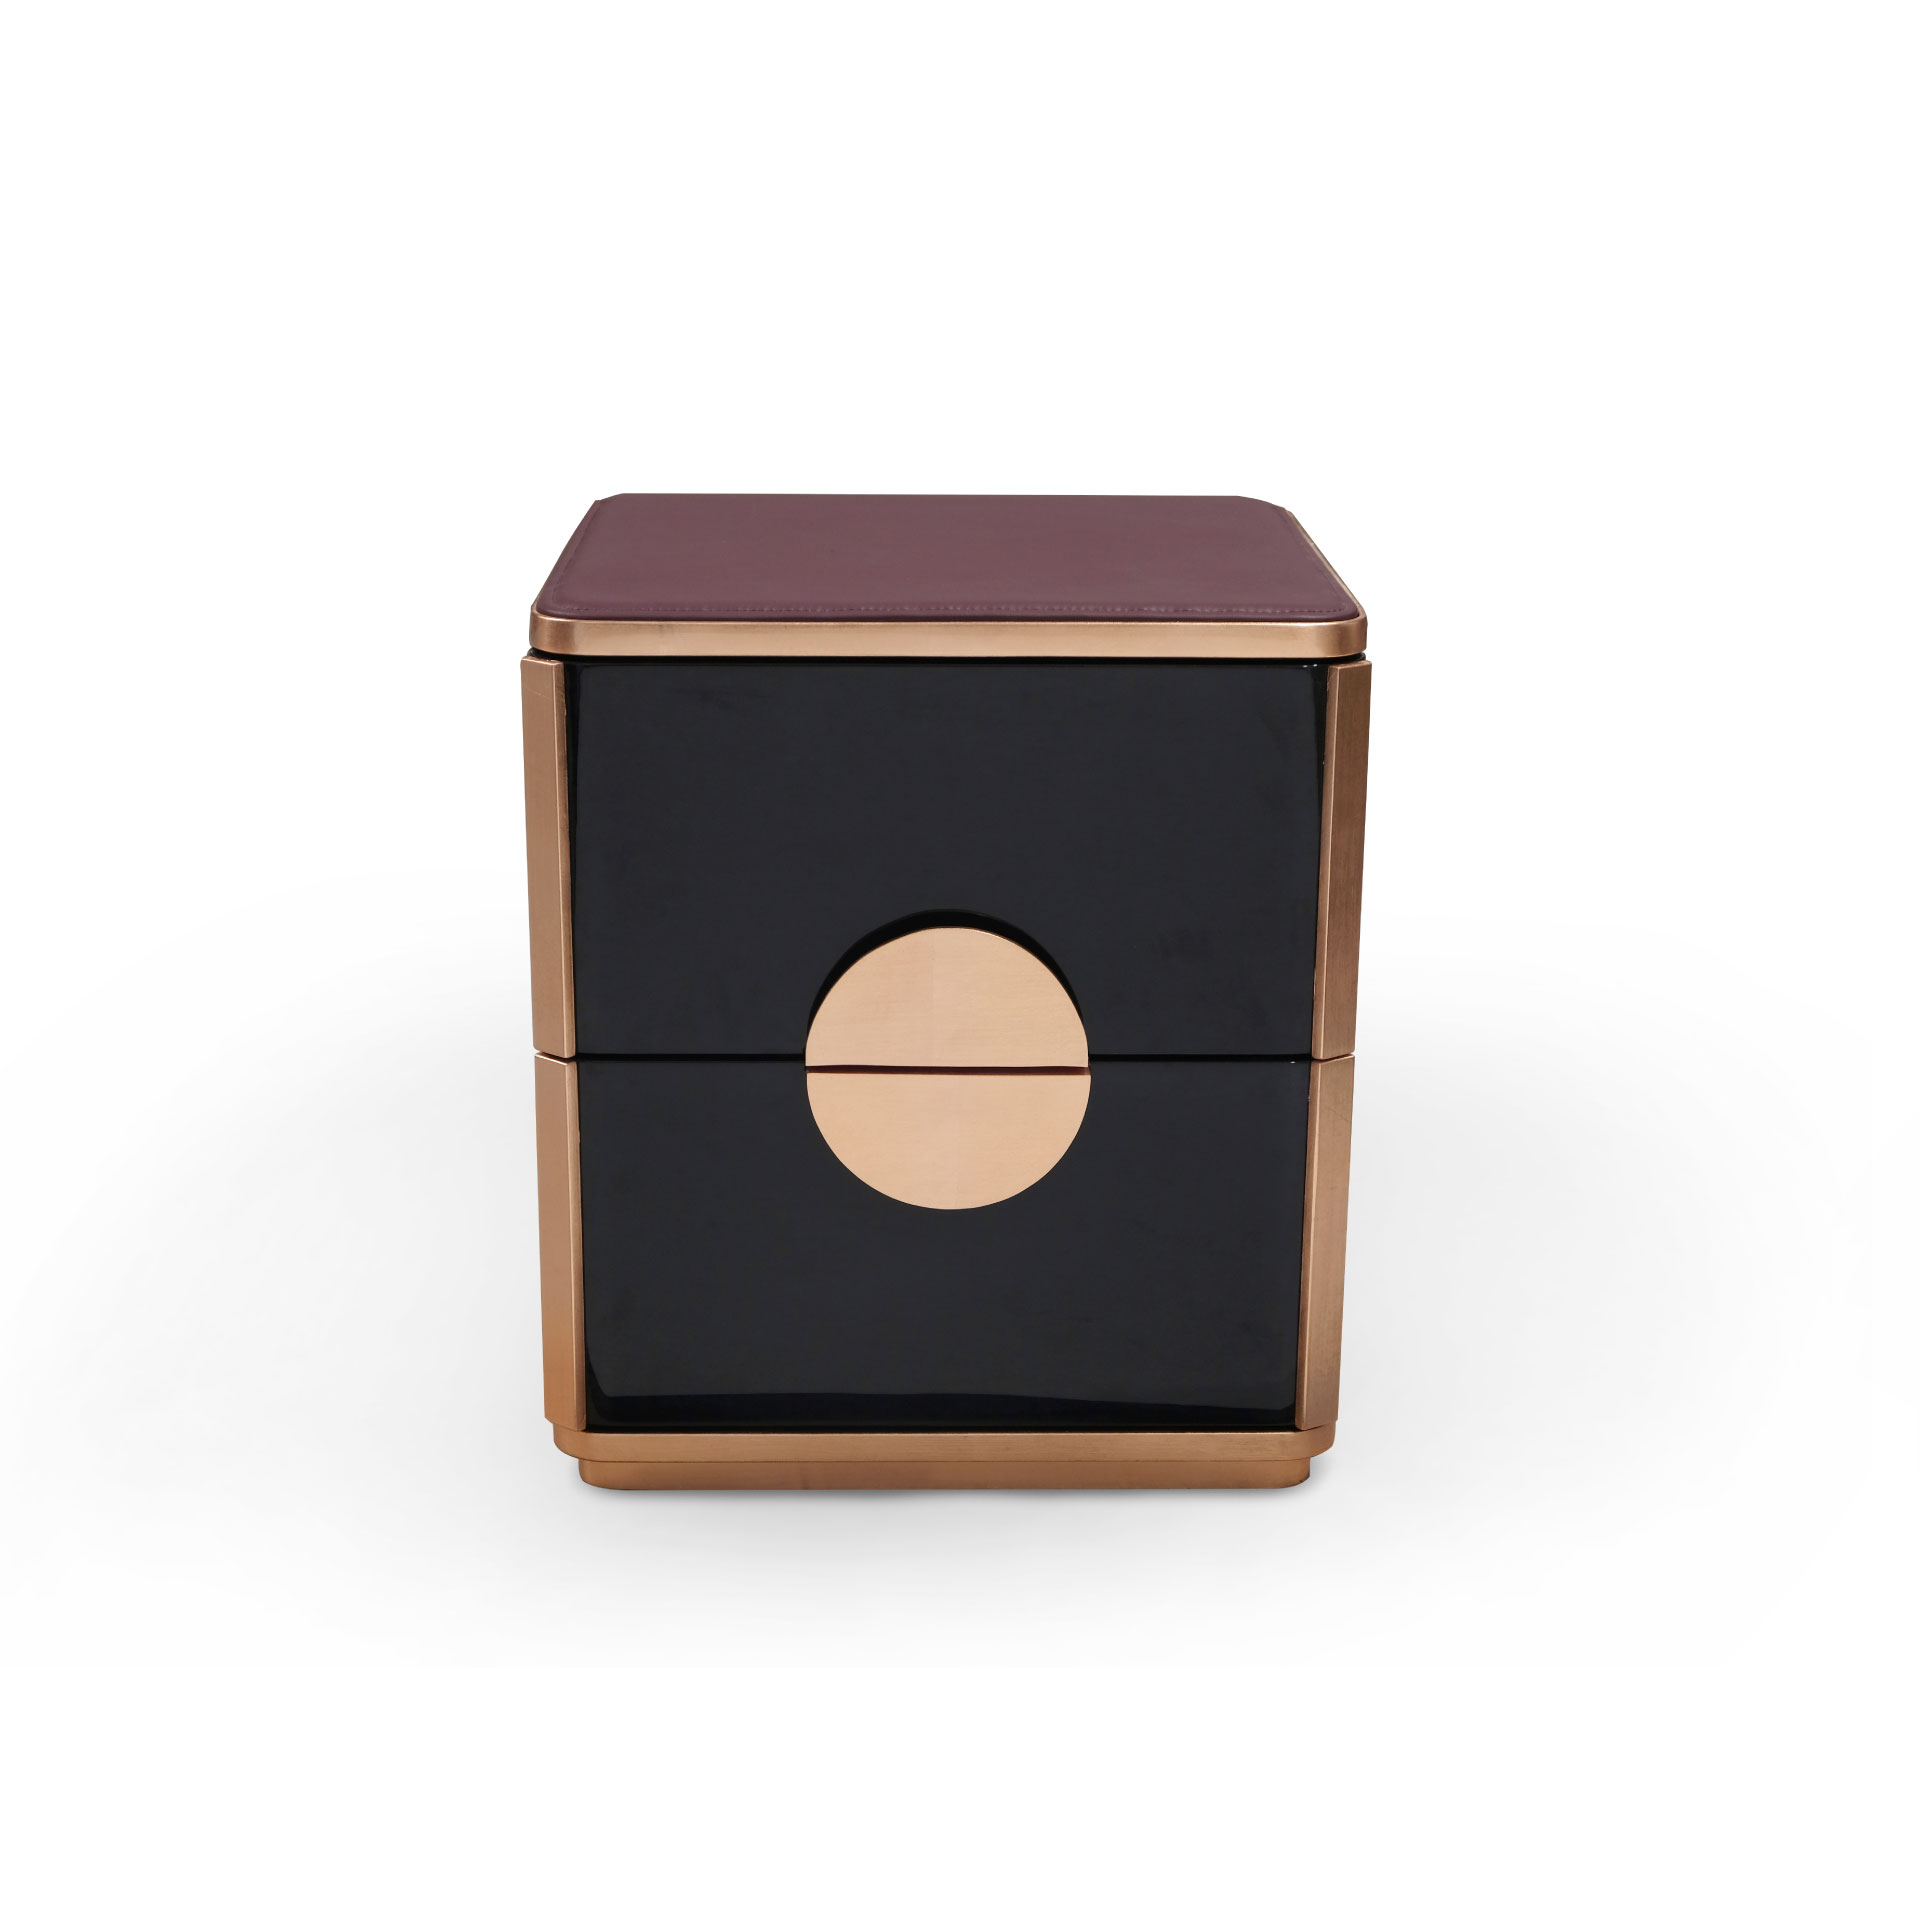 Knox Nightstand